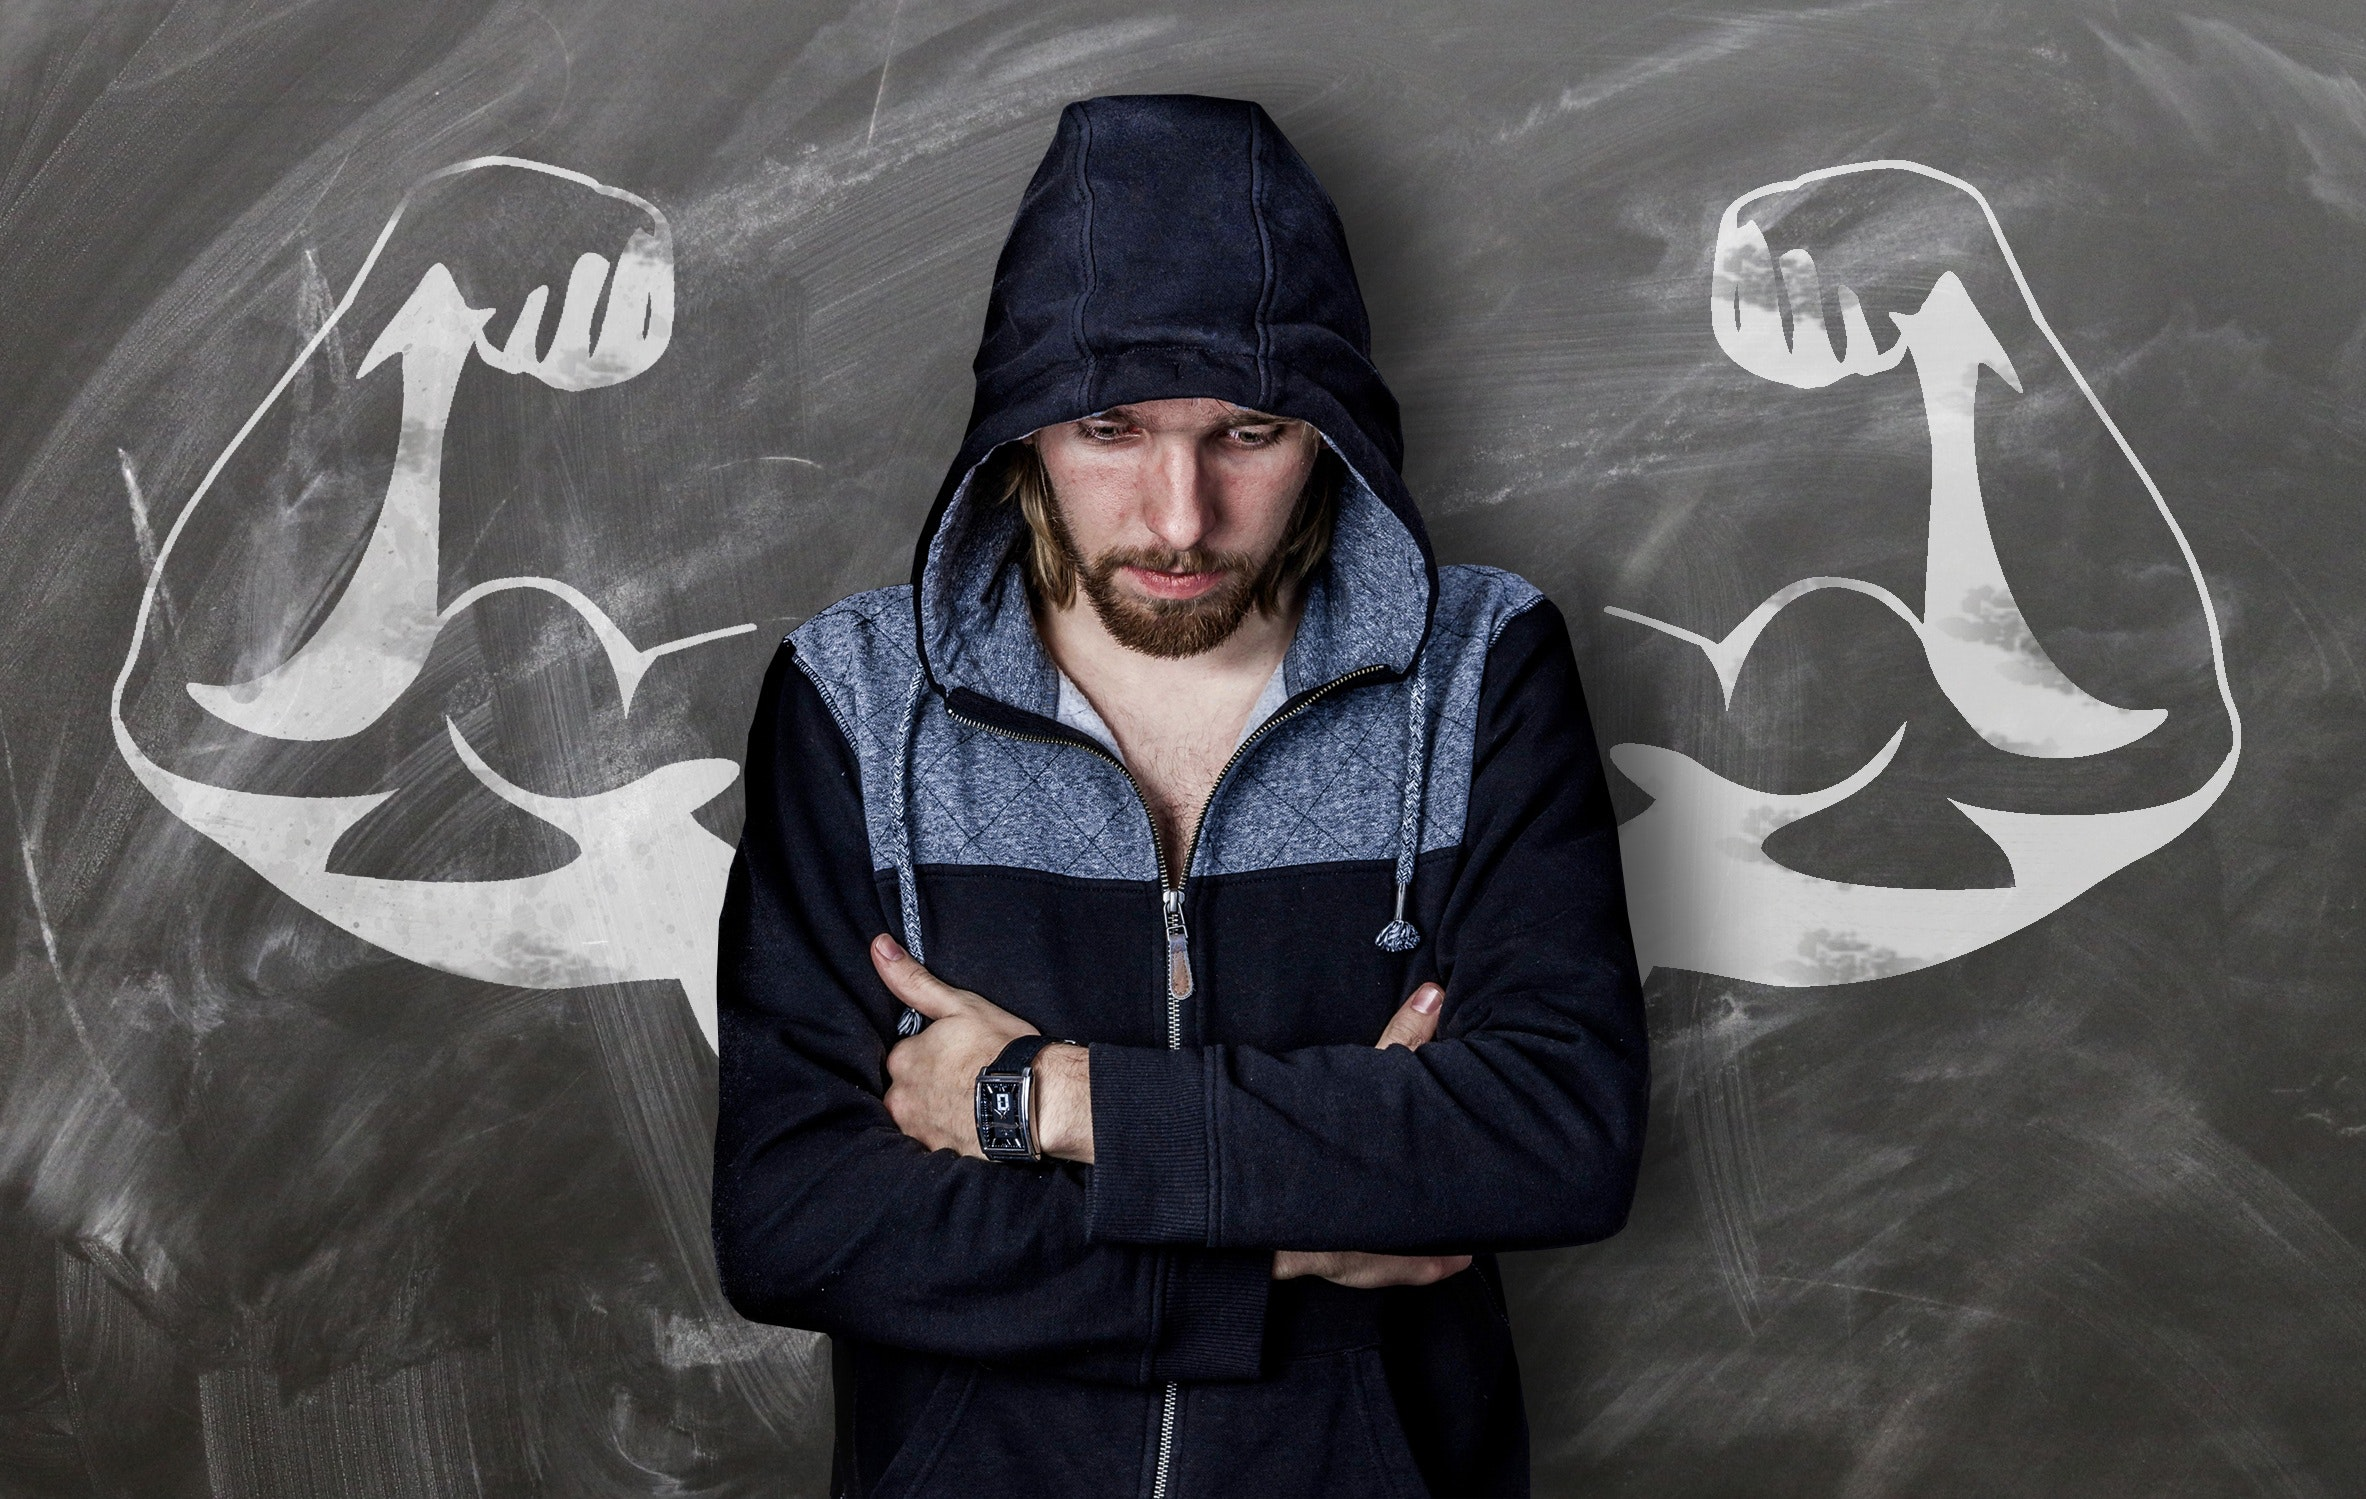 stock image men masculinity